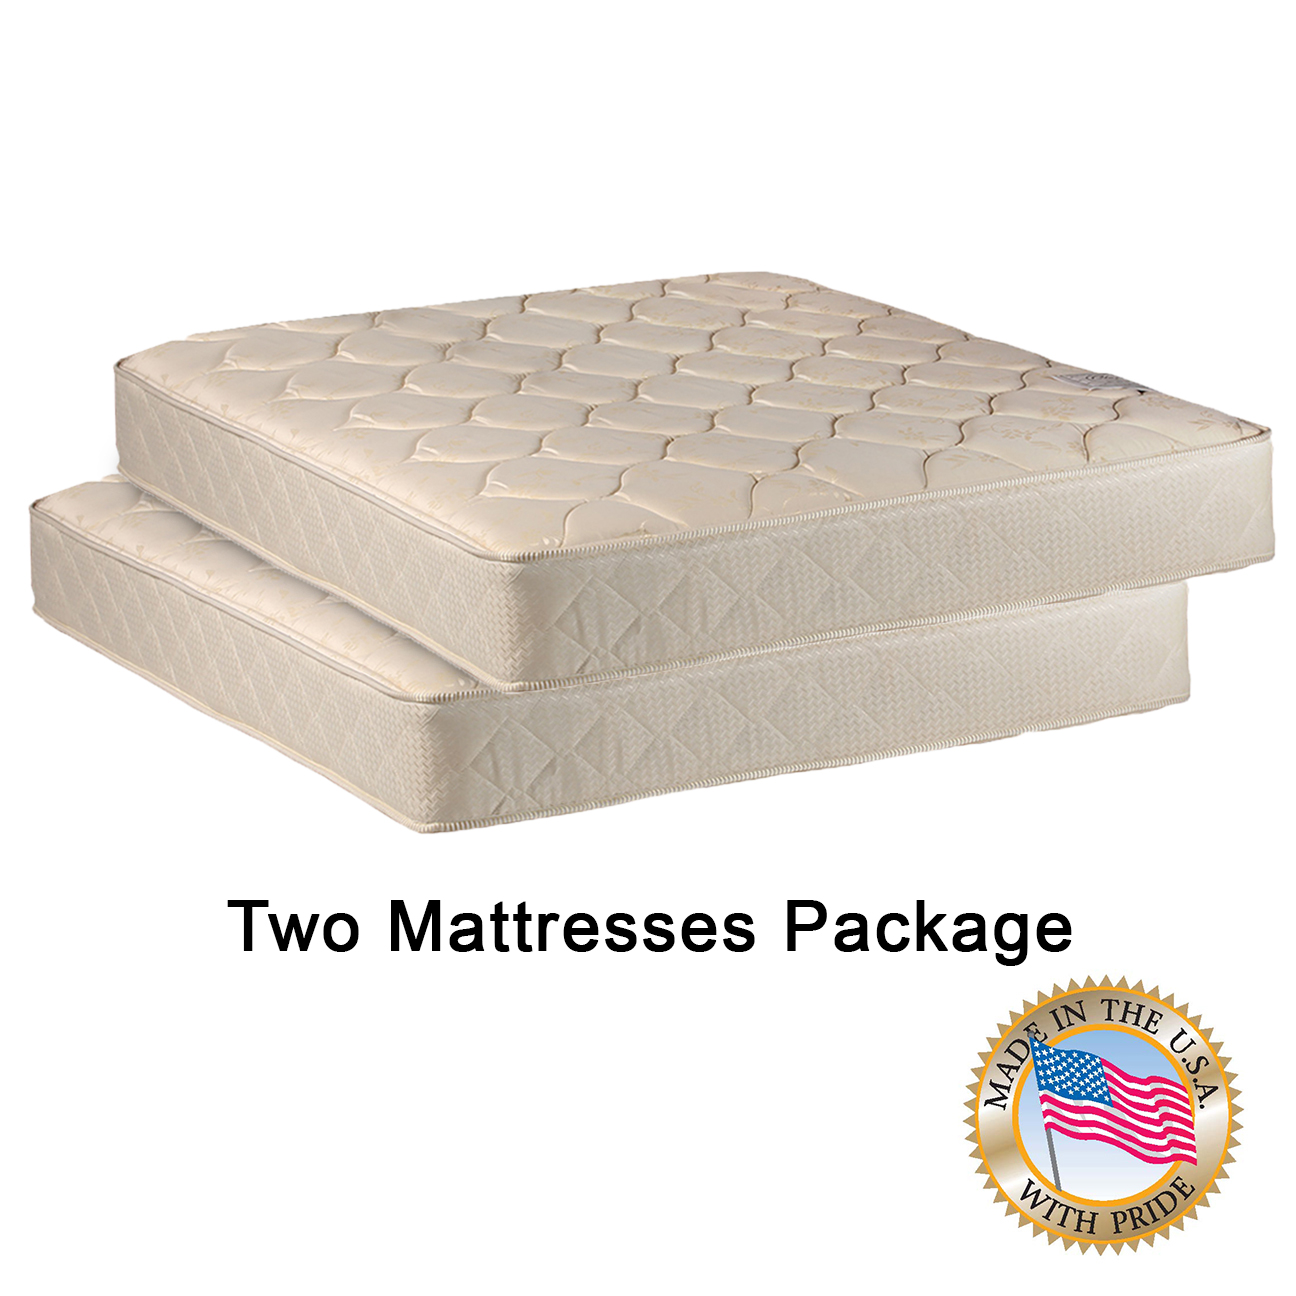 Two 33'' Mattresses Package for Bunk Bed or Trundle Bed